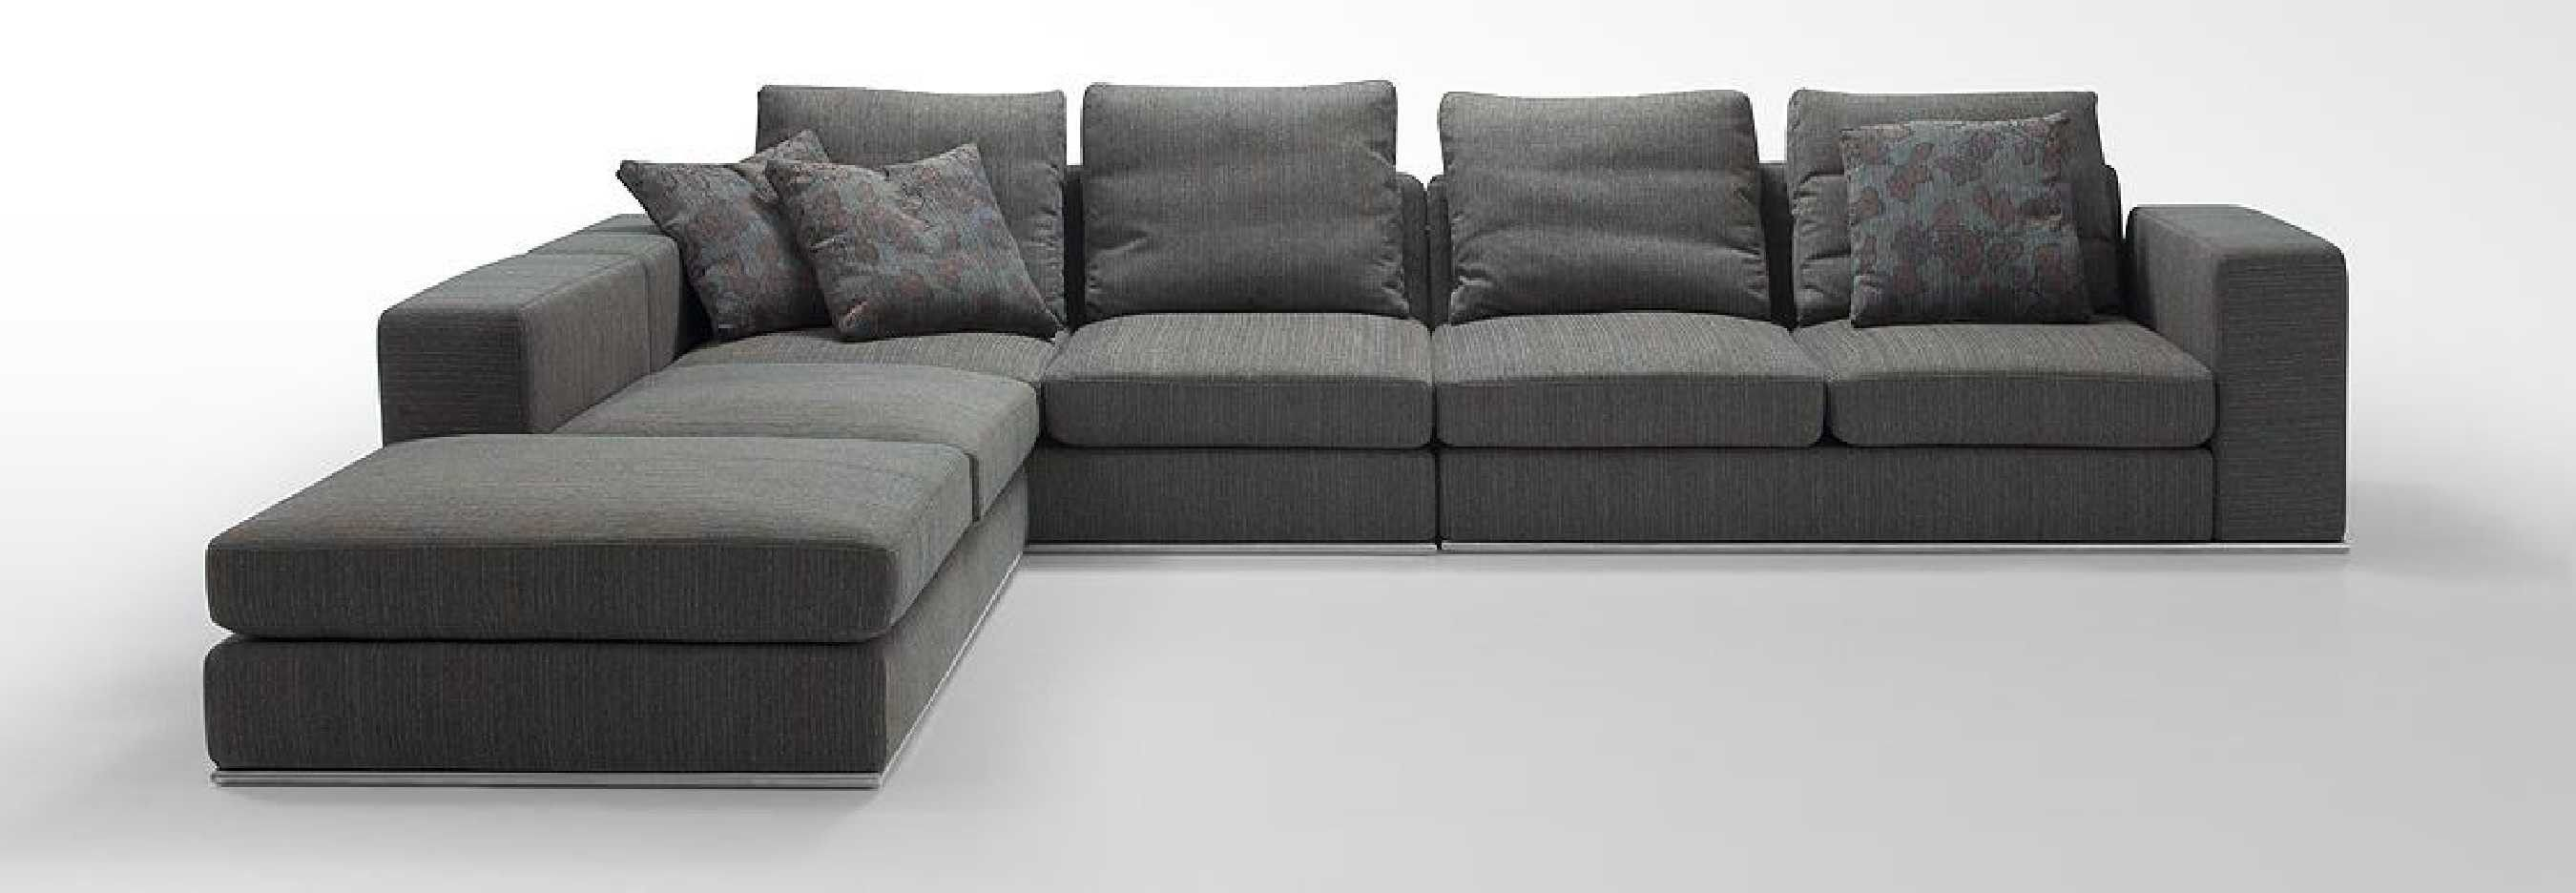 Grey Modern Couch And Dark Gray Sectional Tow Seat Sofa Combined ...